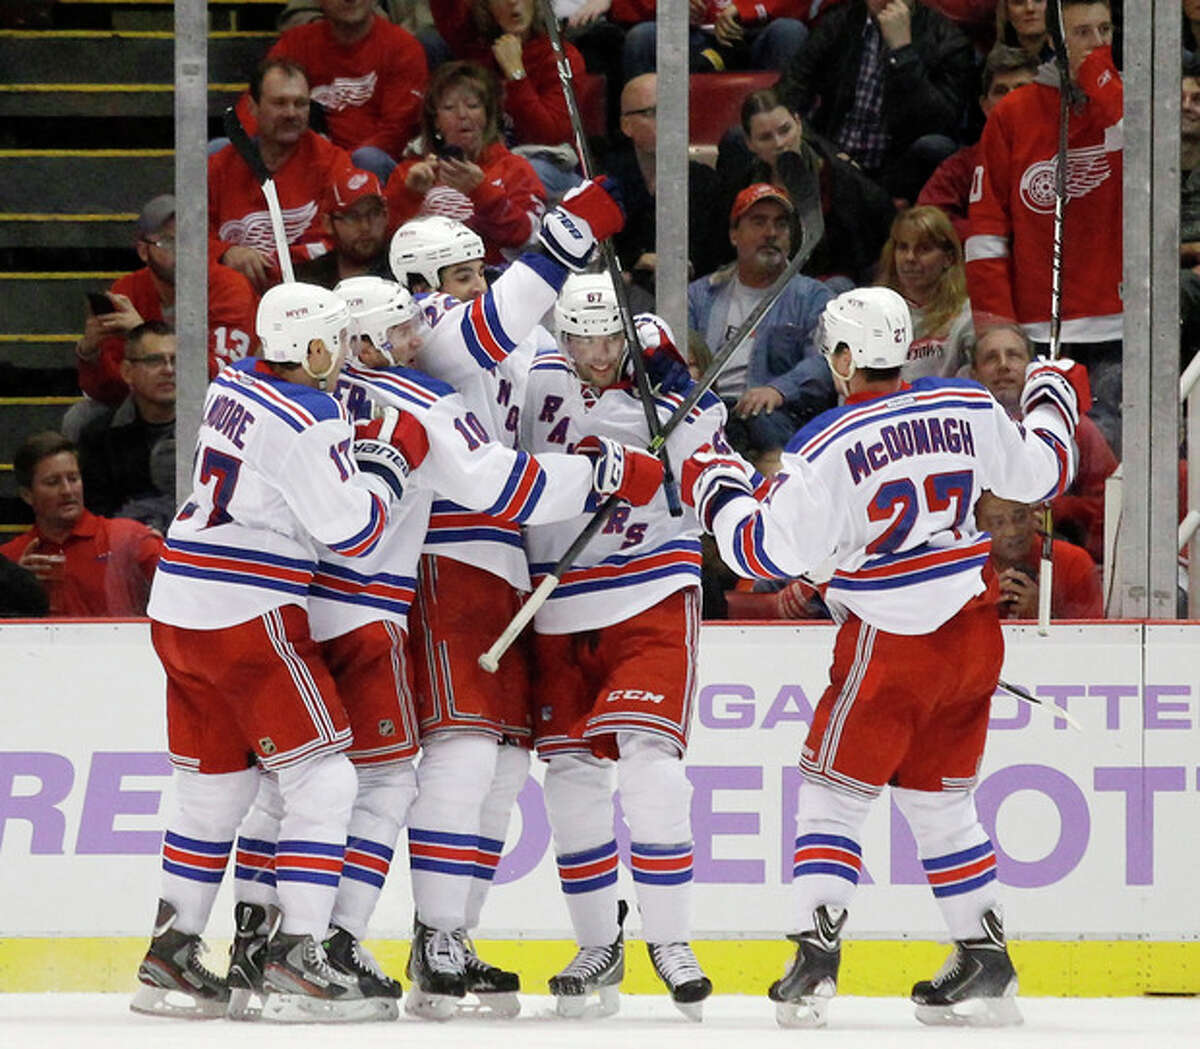 New York Rangers left wing Benoit Pouliot, second from right, celebrates his second period goal against the Detroit Red Wings with teammates John Moore (17), J.T. Miller (10), Brian Boyle (22) and Ryan McDonagh (27) during an NHL hockey game Saturday, Oct. 26, 2013, in Detroit. (AP Photo/Duane Burleson)